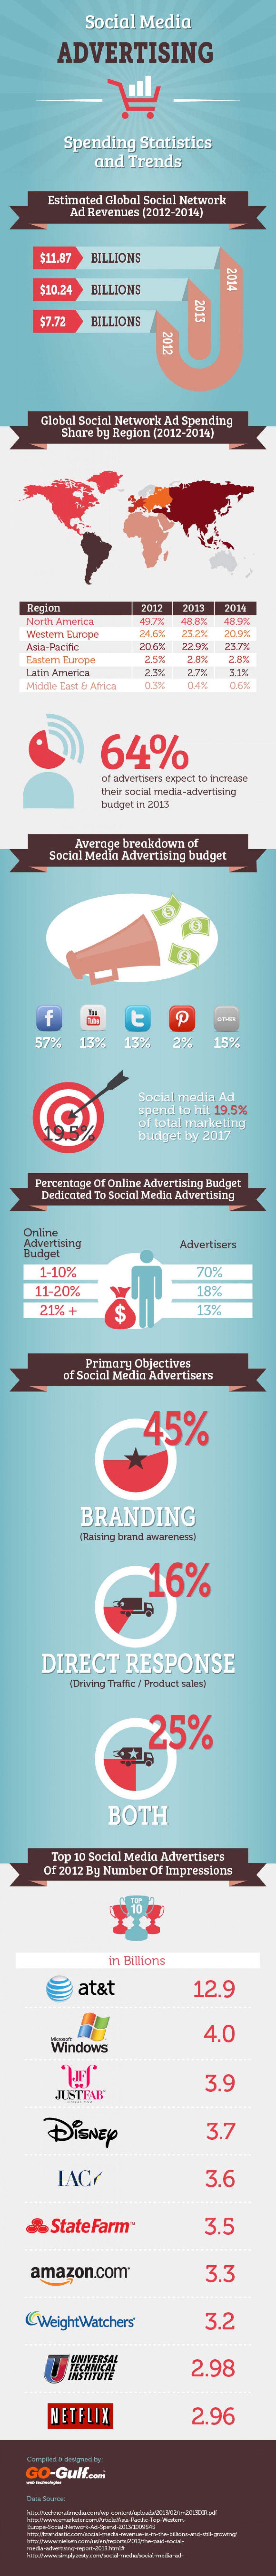 Social Media Advertising - Spending Statistics and Trends Infographic